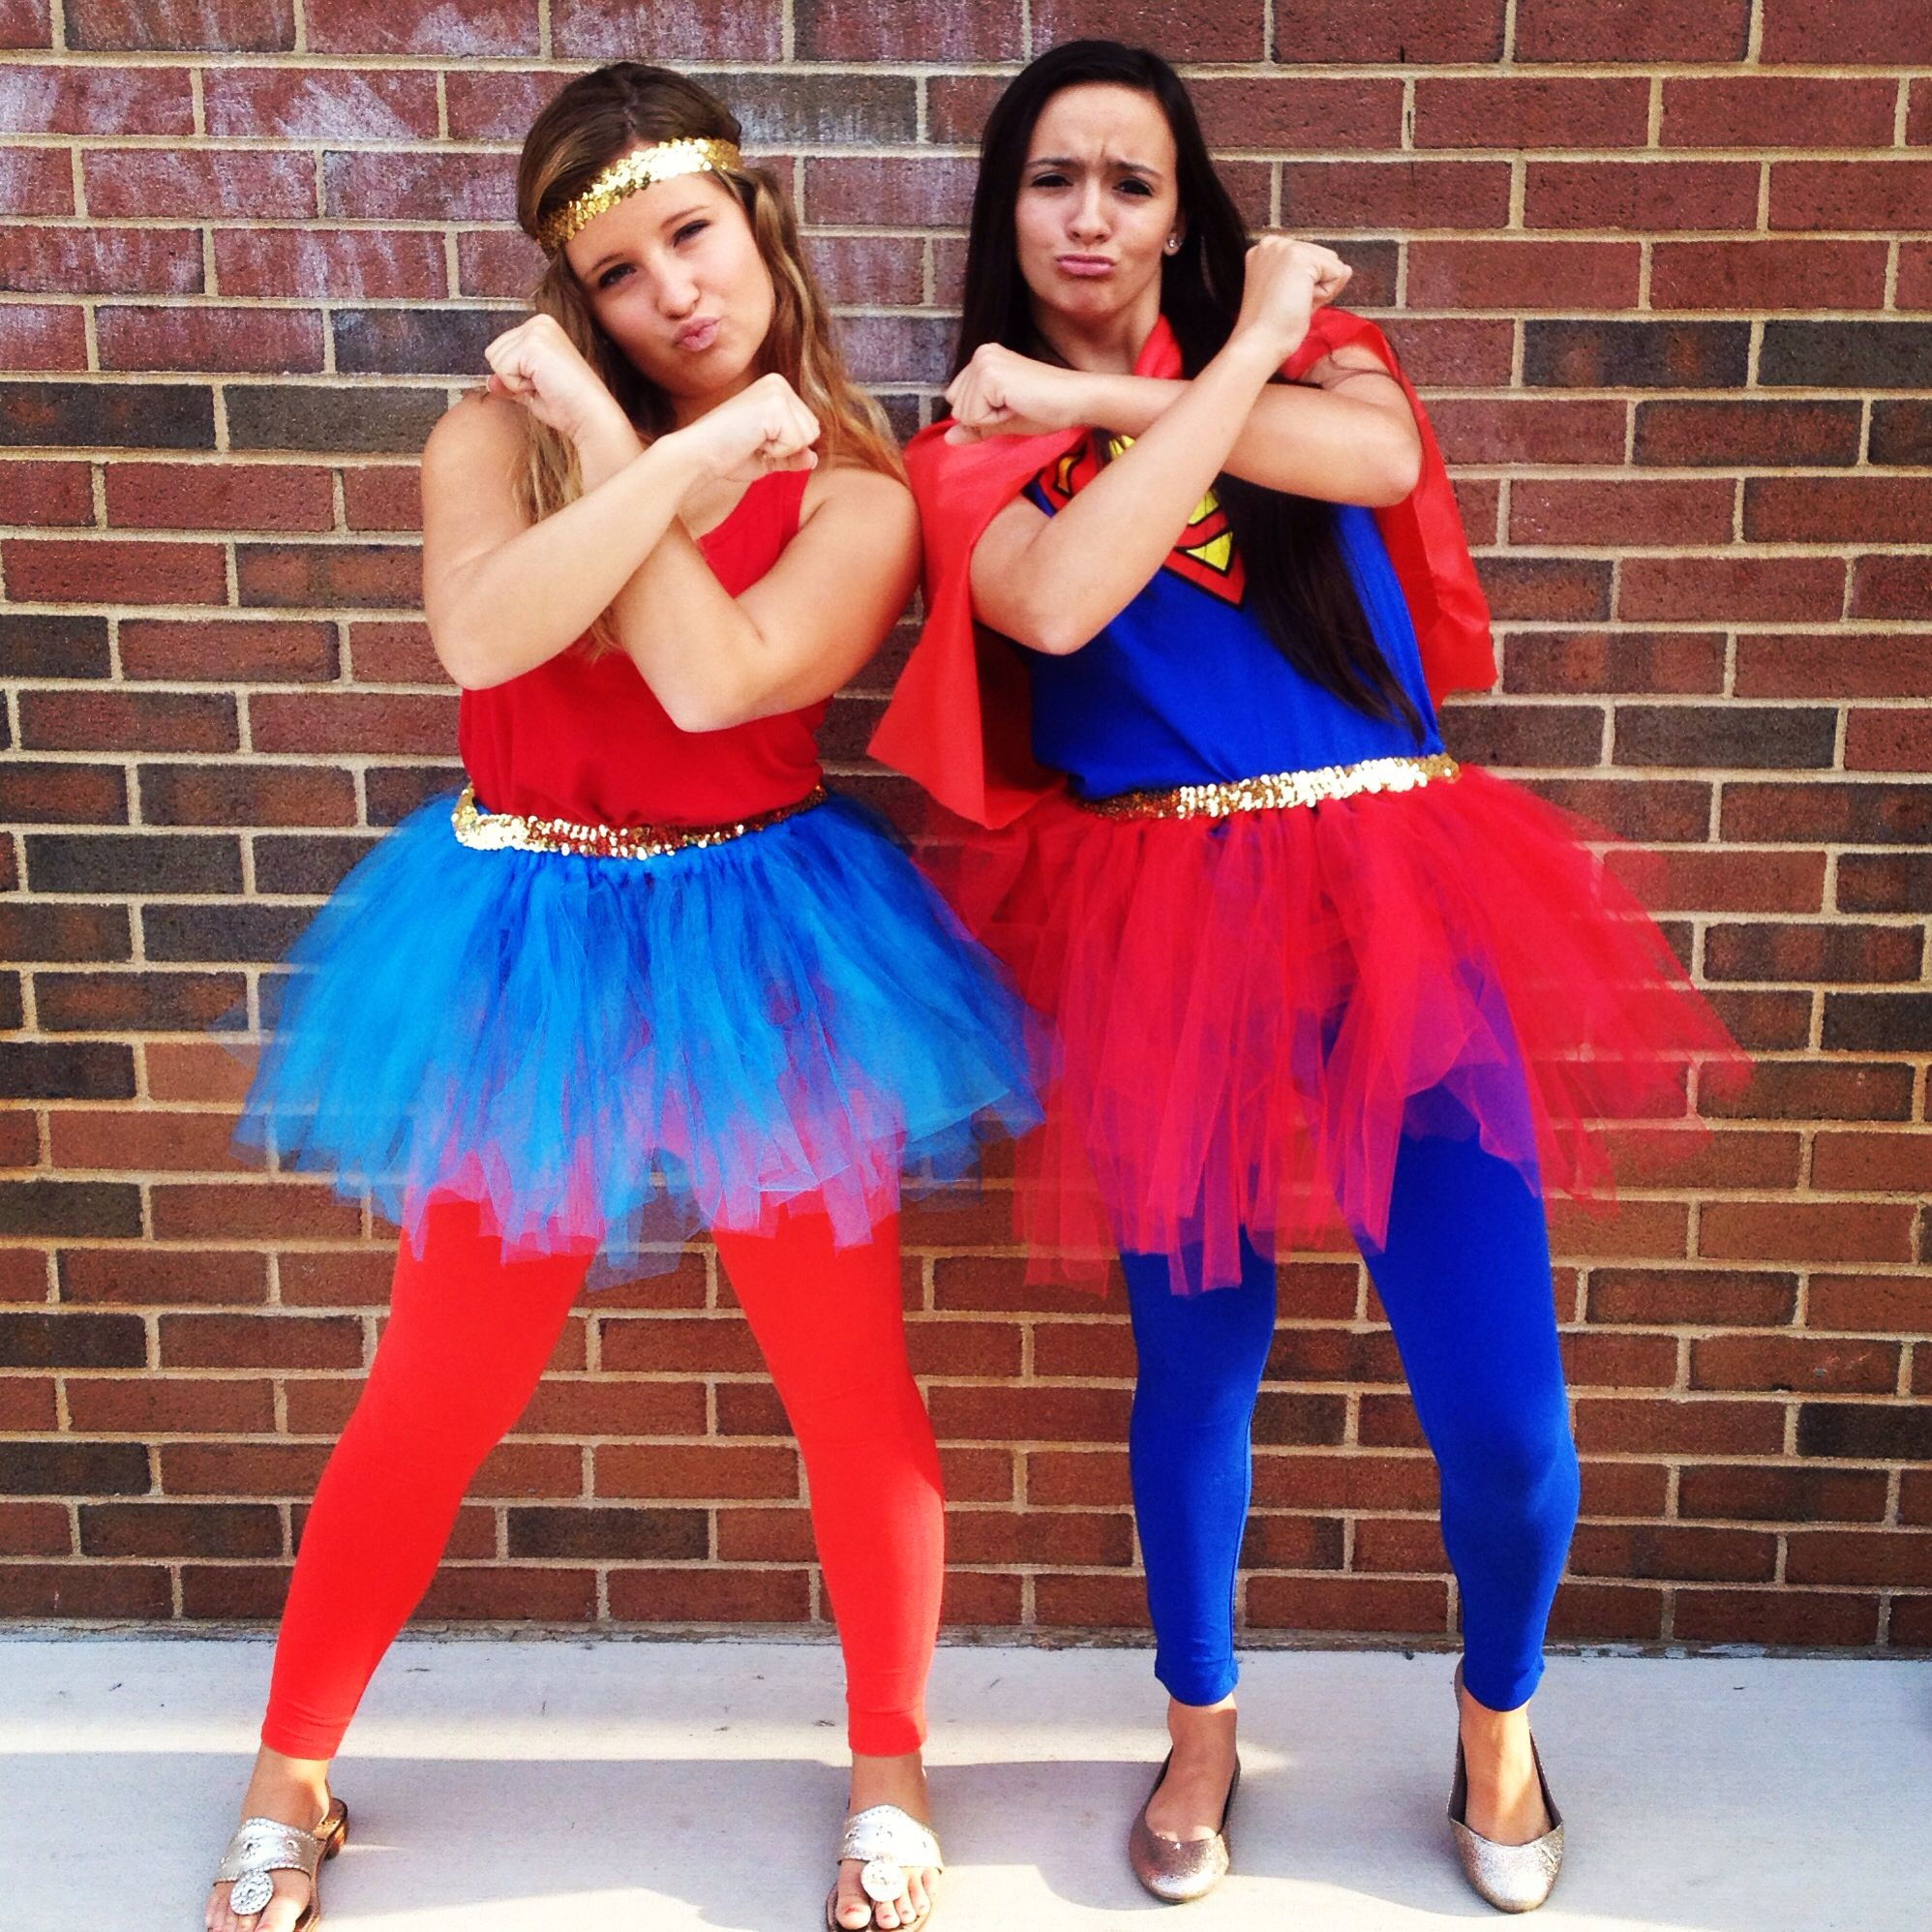 Oh, how I love spirit week | wardrobe | Pinterest | Homecoming ...